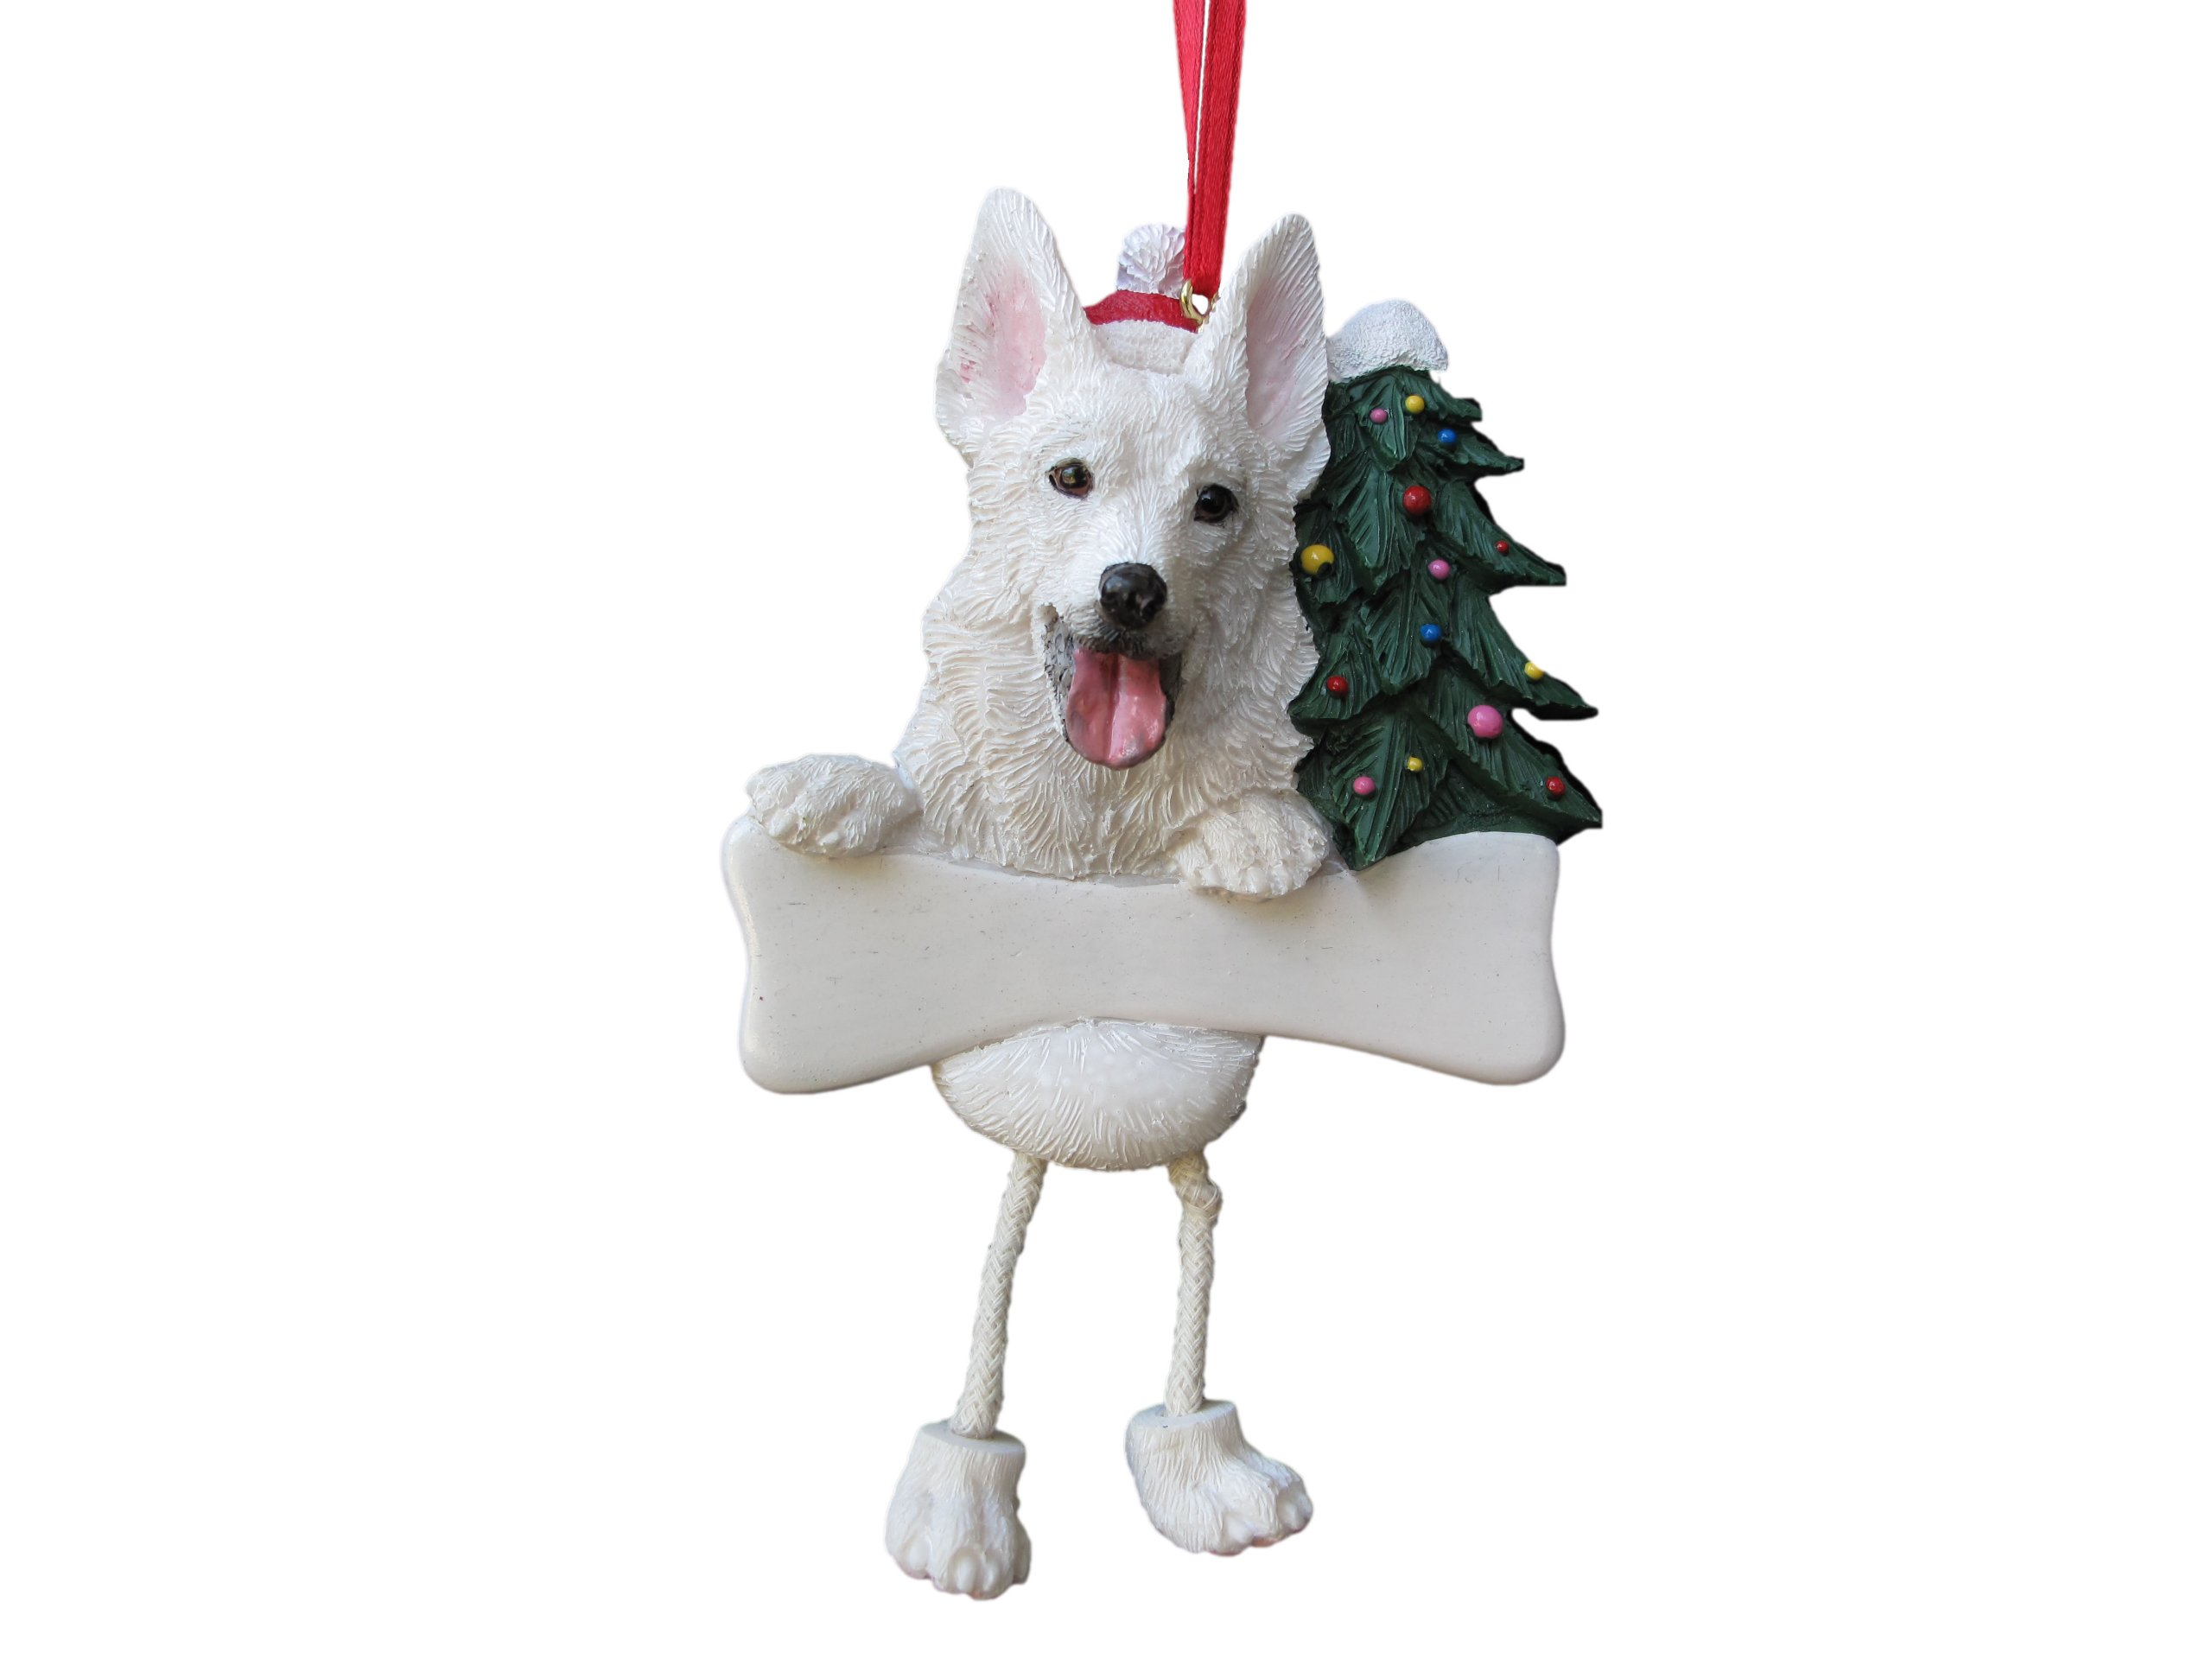 German-Shepherd-Ornament-White-with-Unique-Dangling-Legs-Hand-Painted-and-Easily-Personalized-Christmas-Ornament